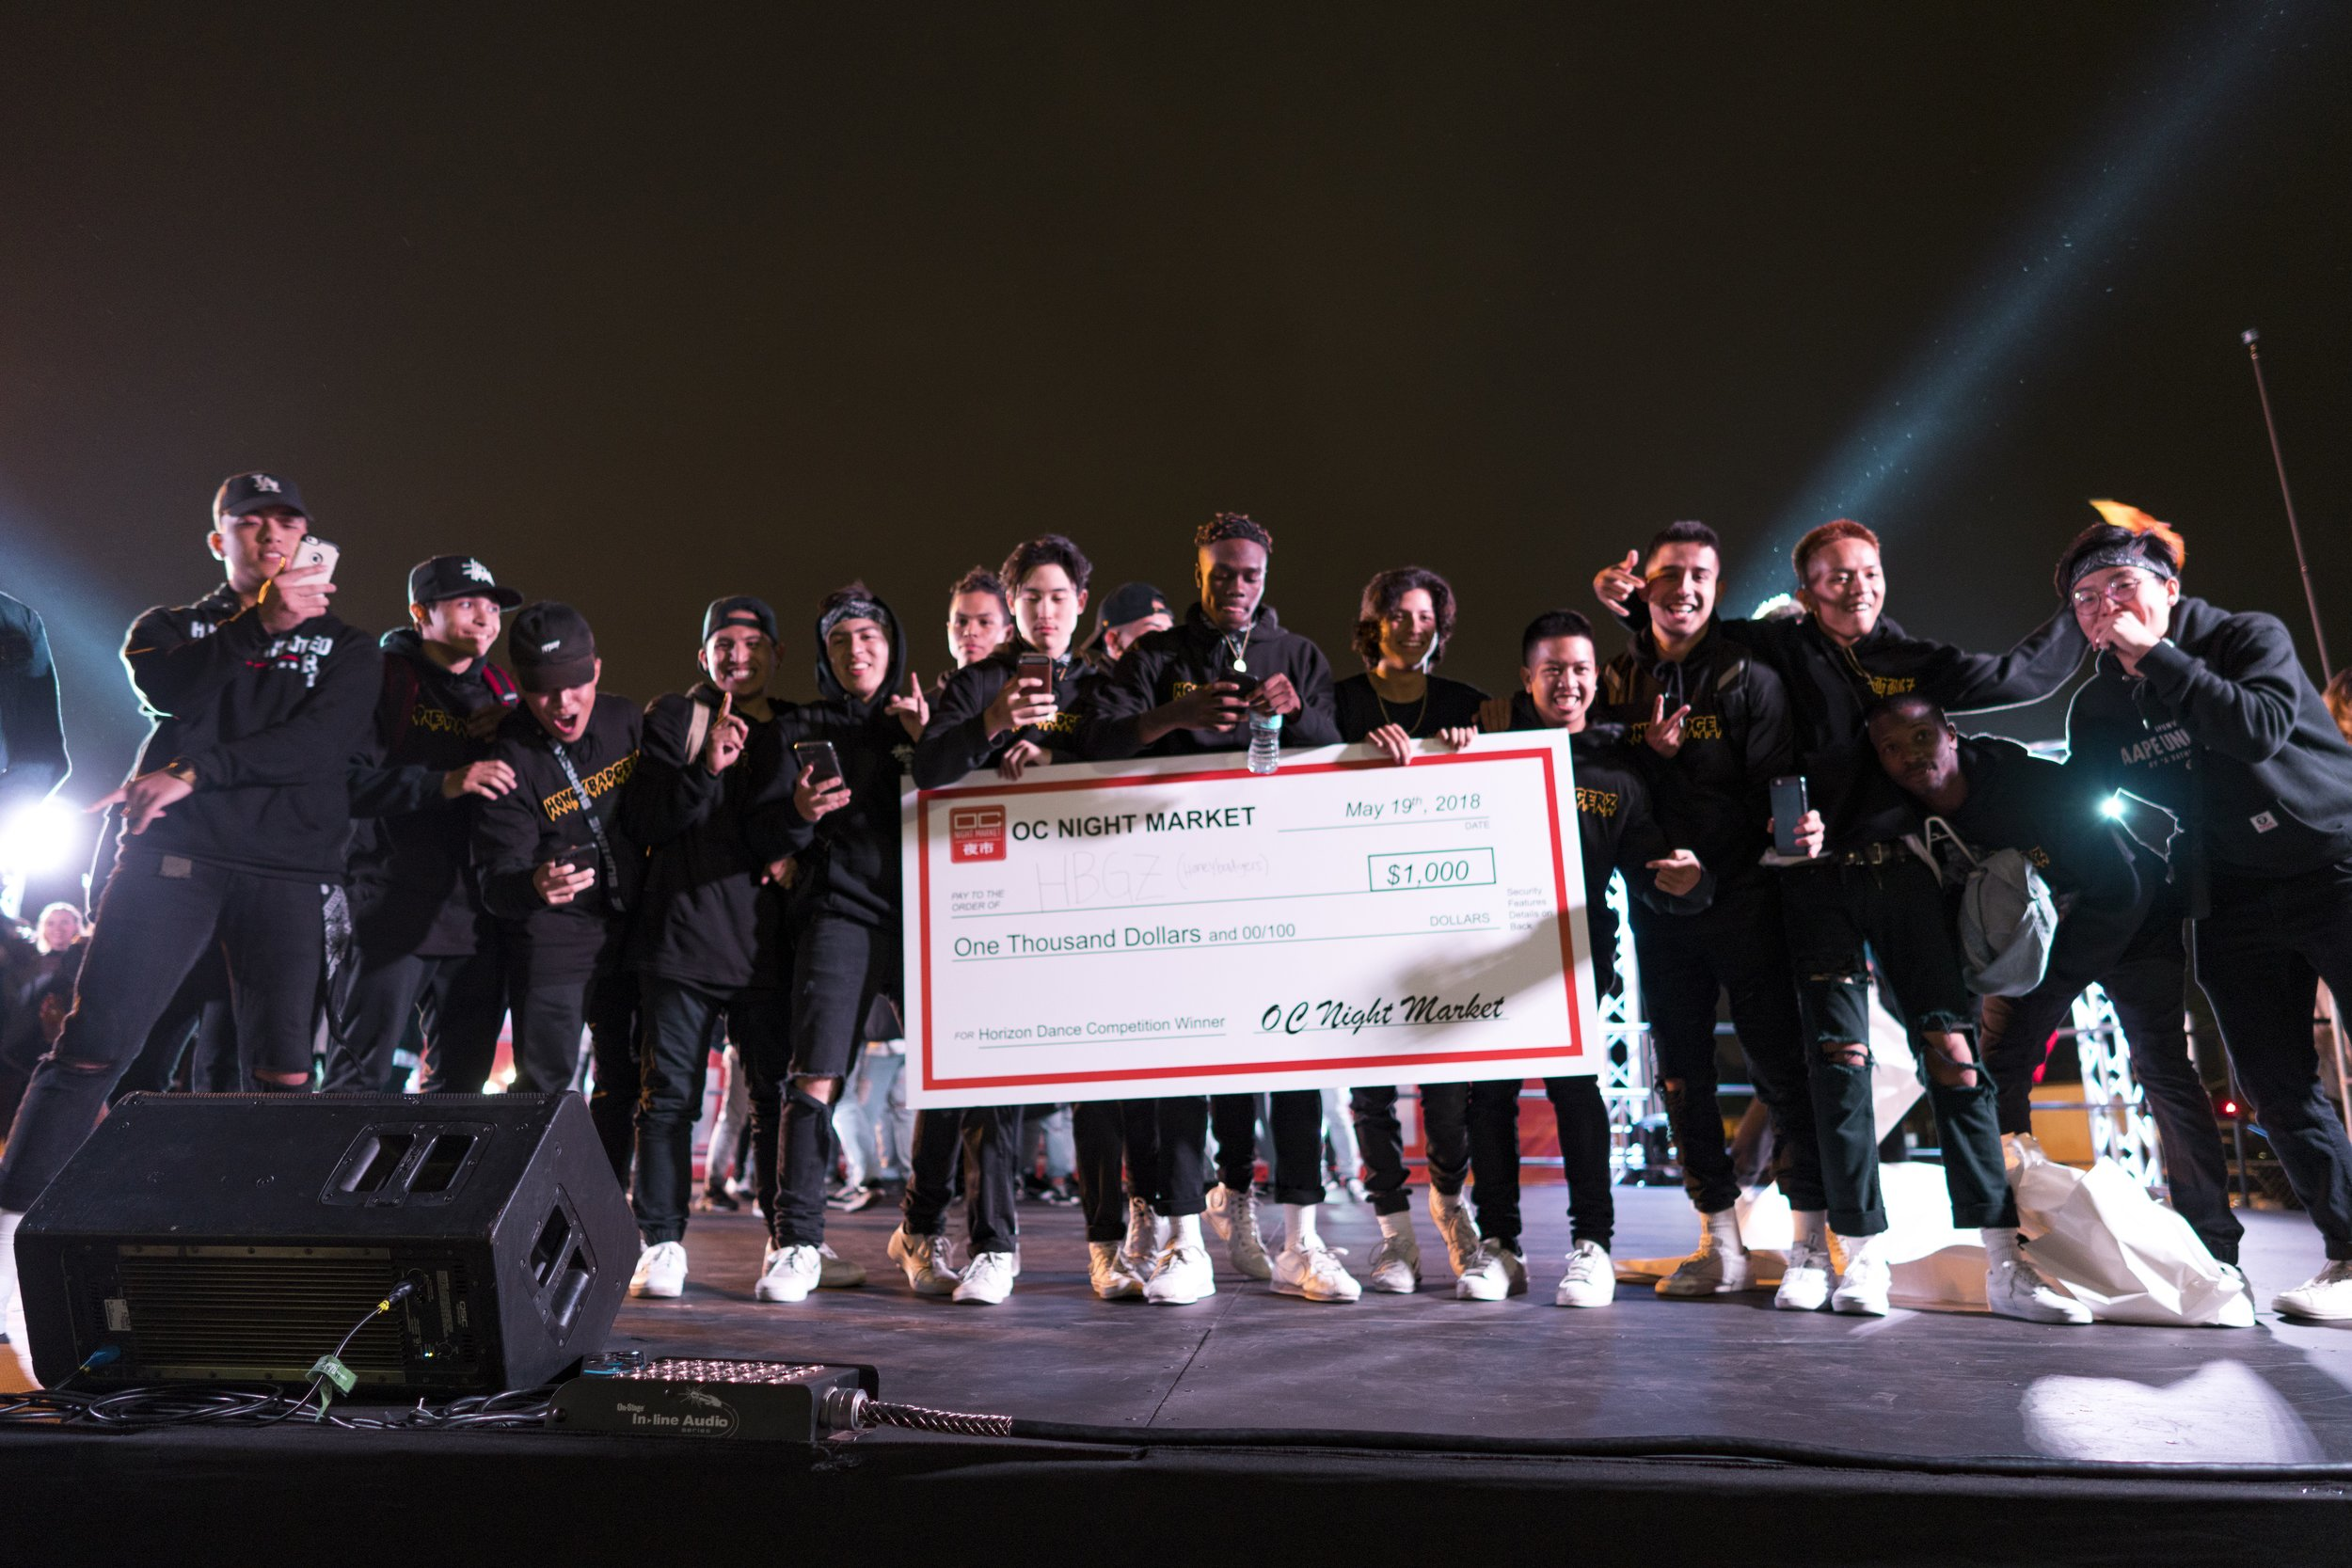 Winners of the 2018 HORIZON dance competition, HBGZ. Photo by Andrew Ge.